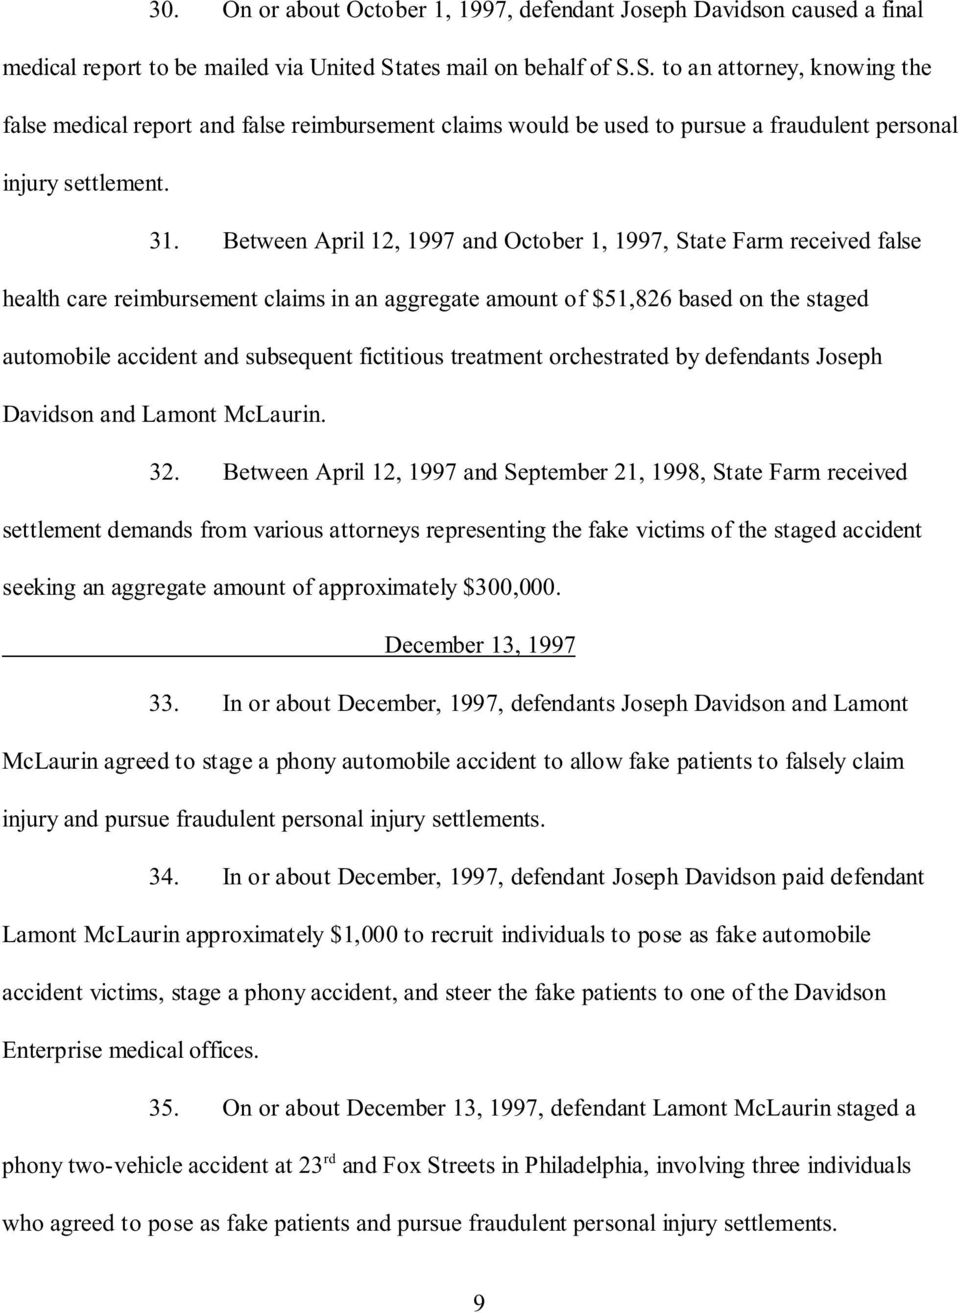 Between April 12, 1997 and October 1, 1997, State Farm received false health care reimbursement claims in an aggregate amount of $51,826 based on the staged automobile accident and subsequent